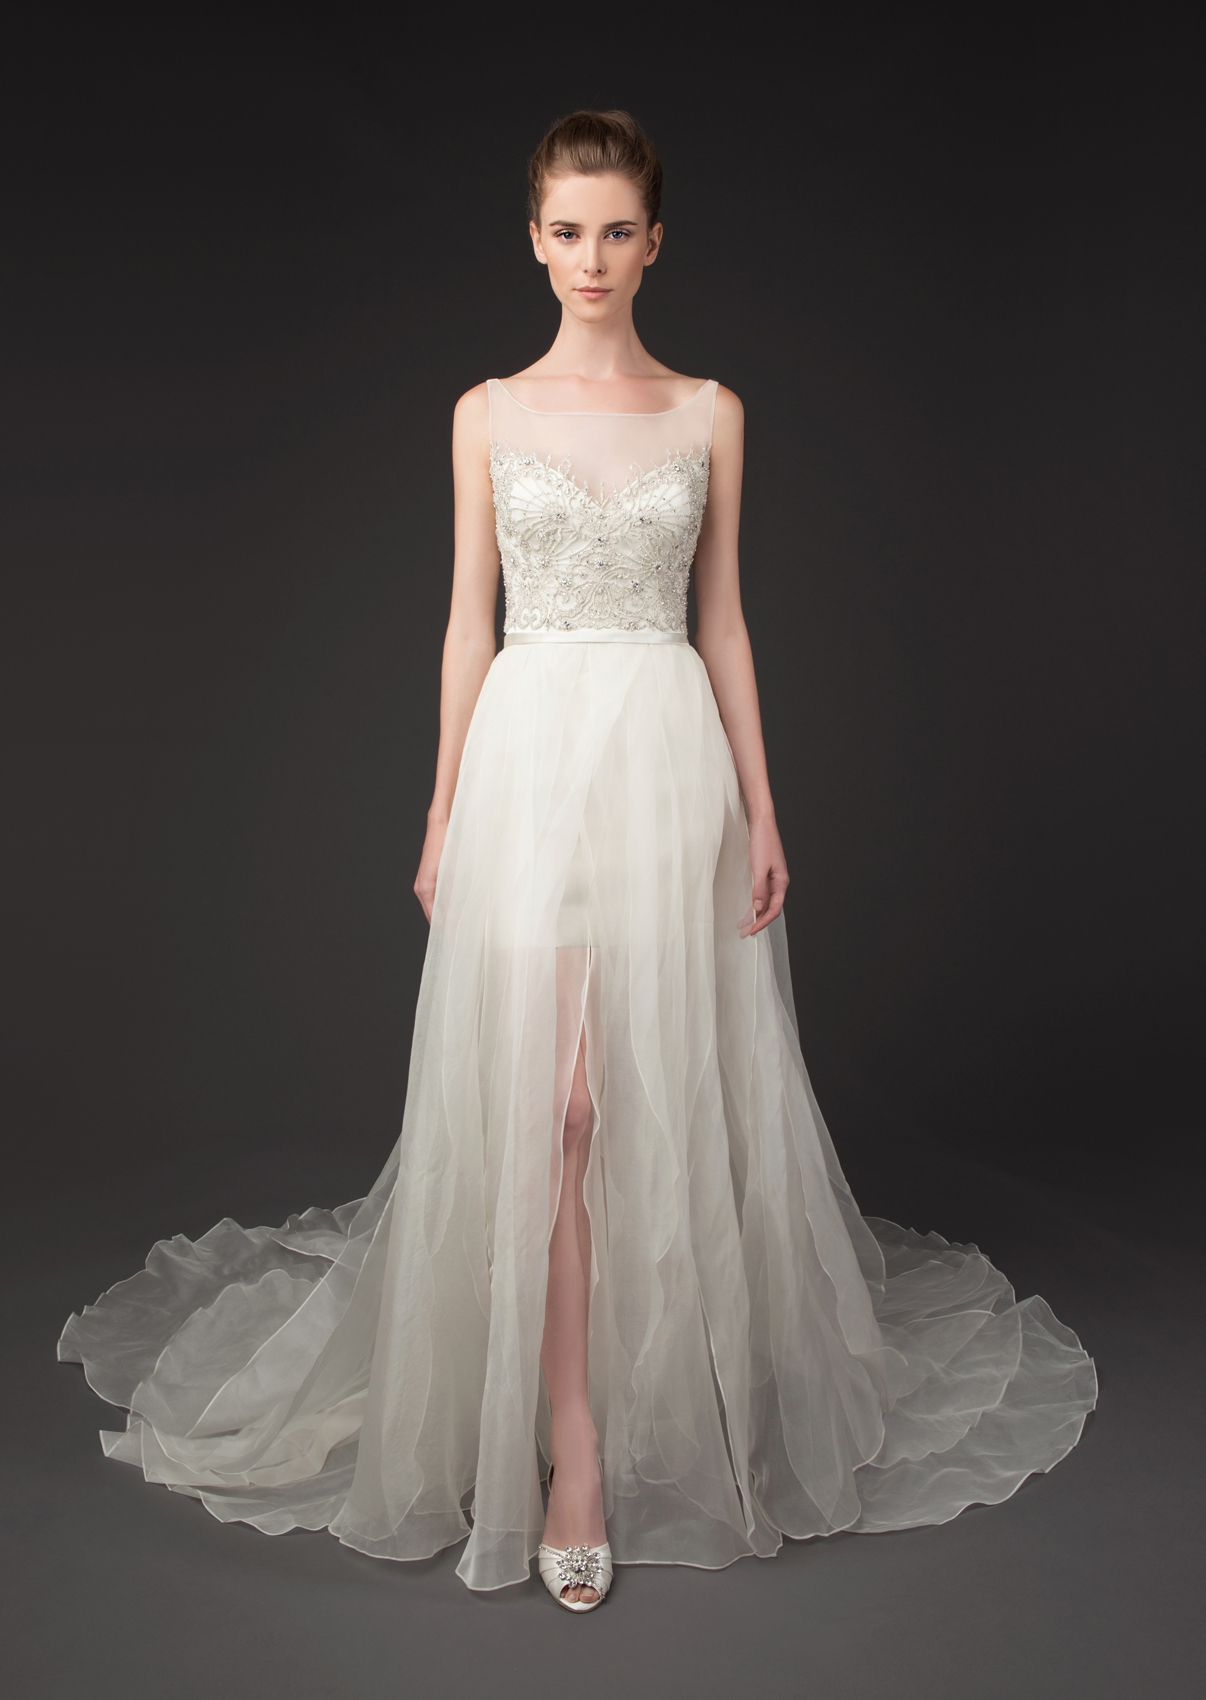 winnie-couture-wedding-dresses-fall-2014-diamond-label-collection-3-01202014